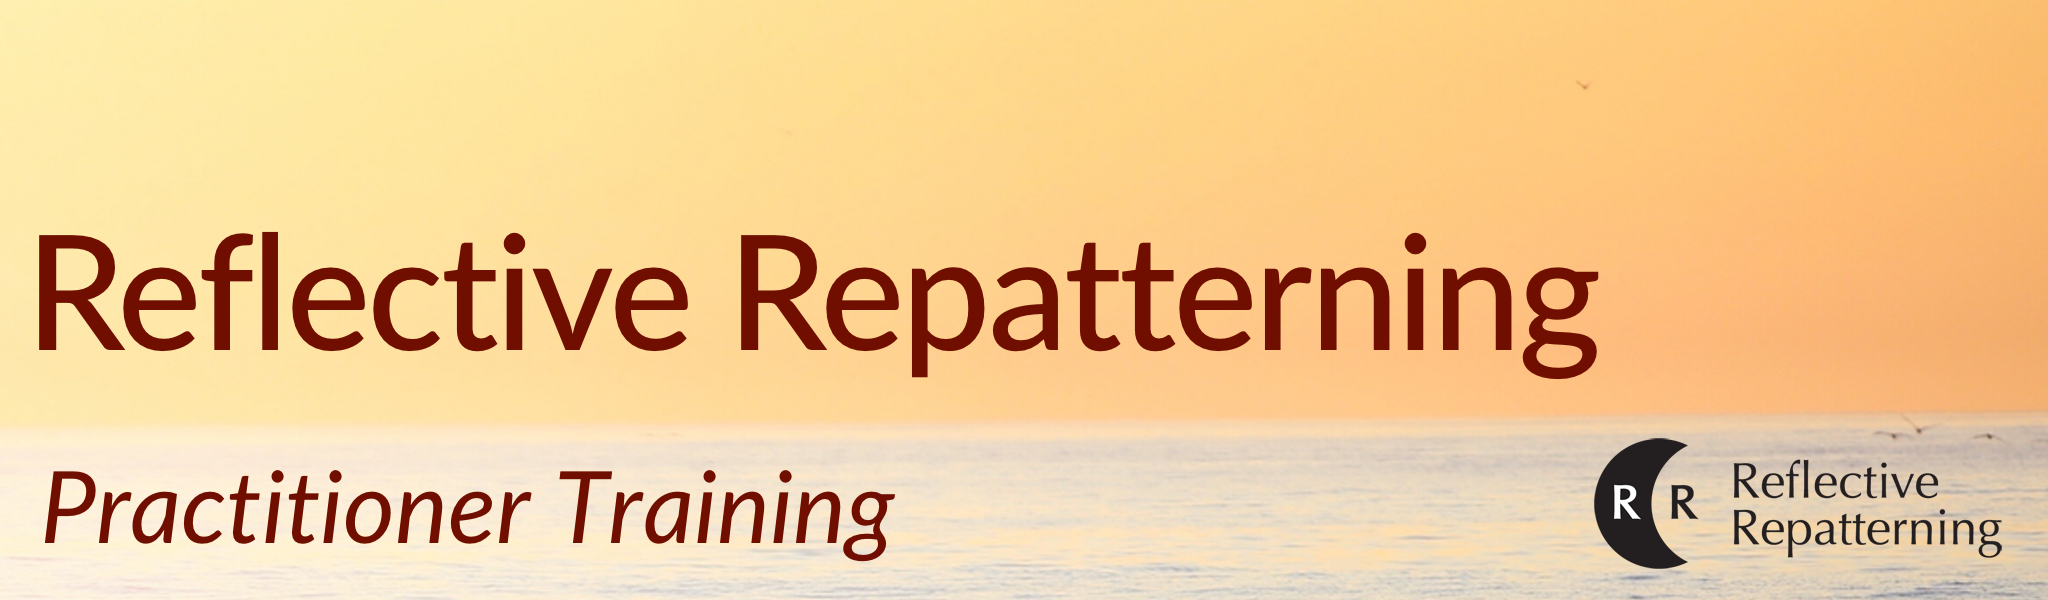 reflective repatterning course